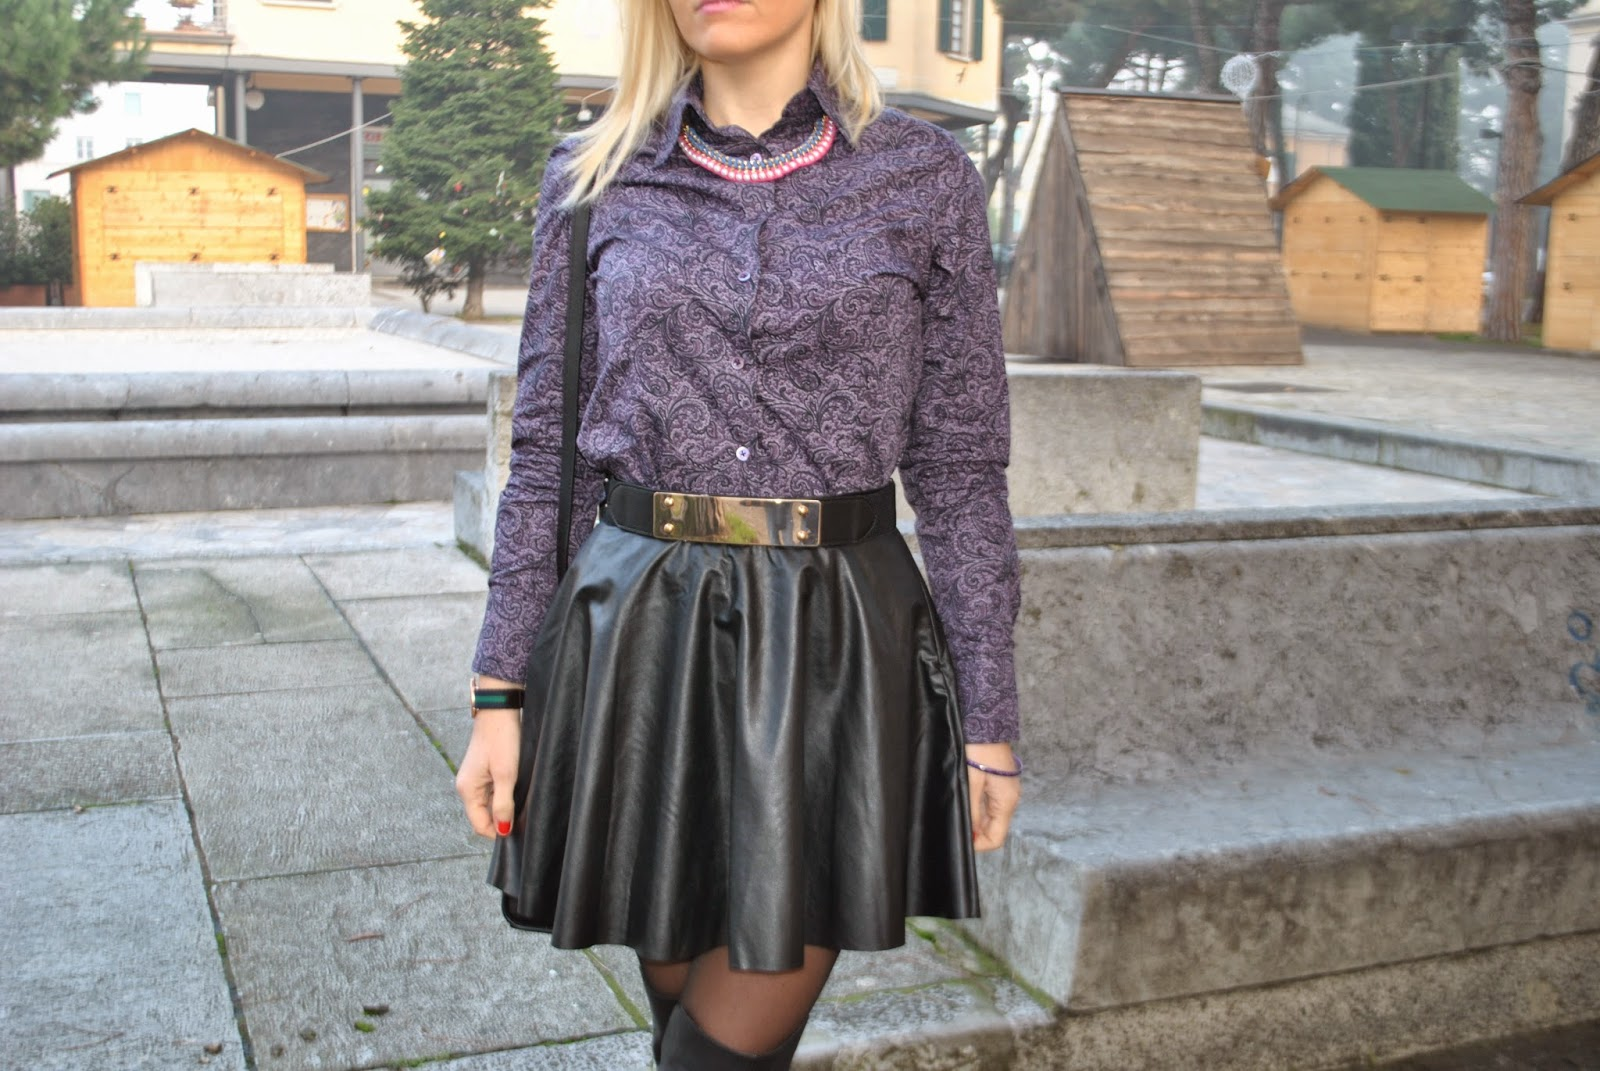 outfit invernali outfit dicembre 2014 outfit gonna in pelle nera outfit stivali al ginocchio come abbinare la gonna in pelle abbinamenti gonna in pelle come abbinare gli stivali al ginocchio abbinamenti stivali al ginocchio how to wear leather skirt how to wear over knee boots fashion blog italiani fashion blogger italiane mariafelicia magno fashion blogger colorblock by felym fashion blogger milano fashion blogger bionde ragazze bionde italian fashion bloggers blonde girls blog di moda italiani blogger italiane di moda borsa michael kors mini selma michael kors orologio daniel wellington mini selma bag by michael kors daniel wellington watch majique london necklace